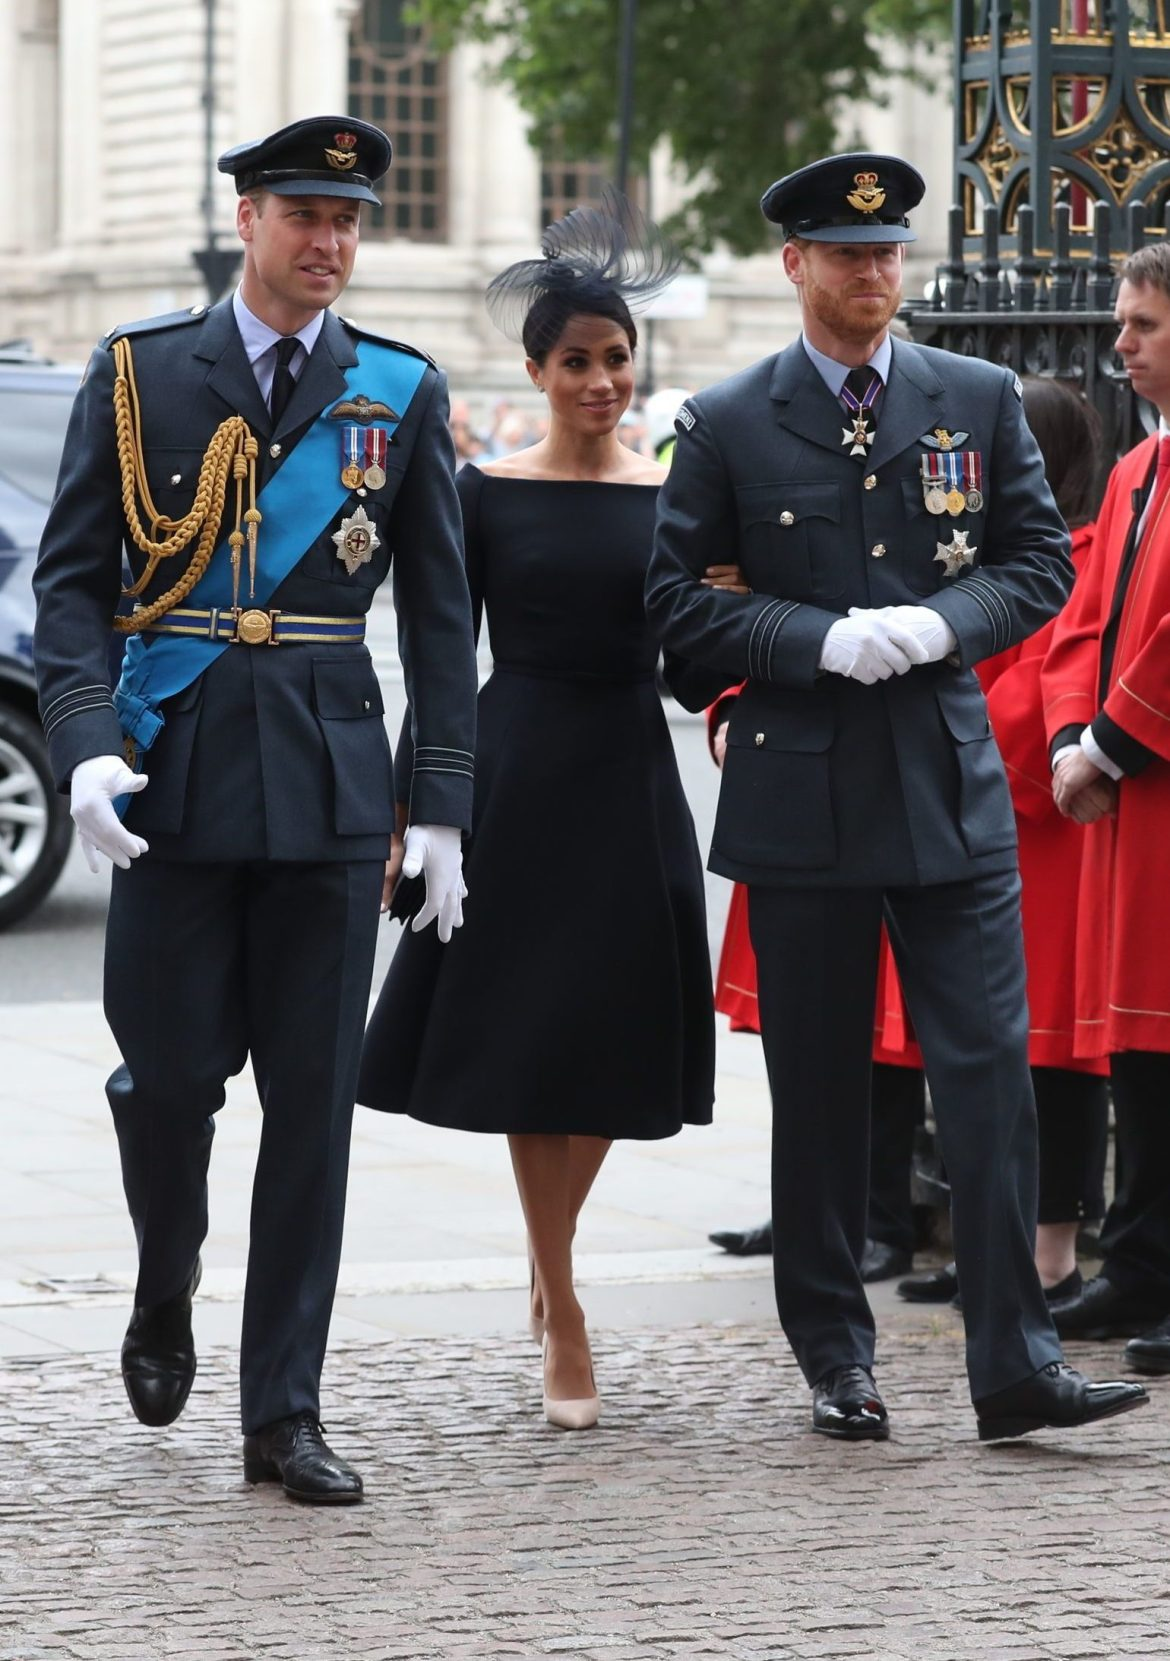 Meghan Markle and Prince Harry have said they don't want to rely on public funds in their new lives, the Queen said after the summit